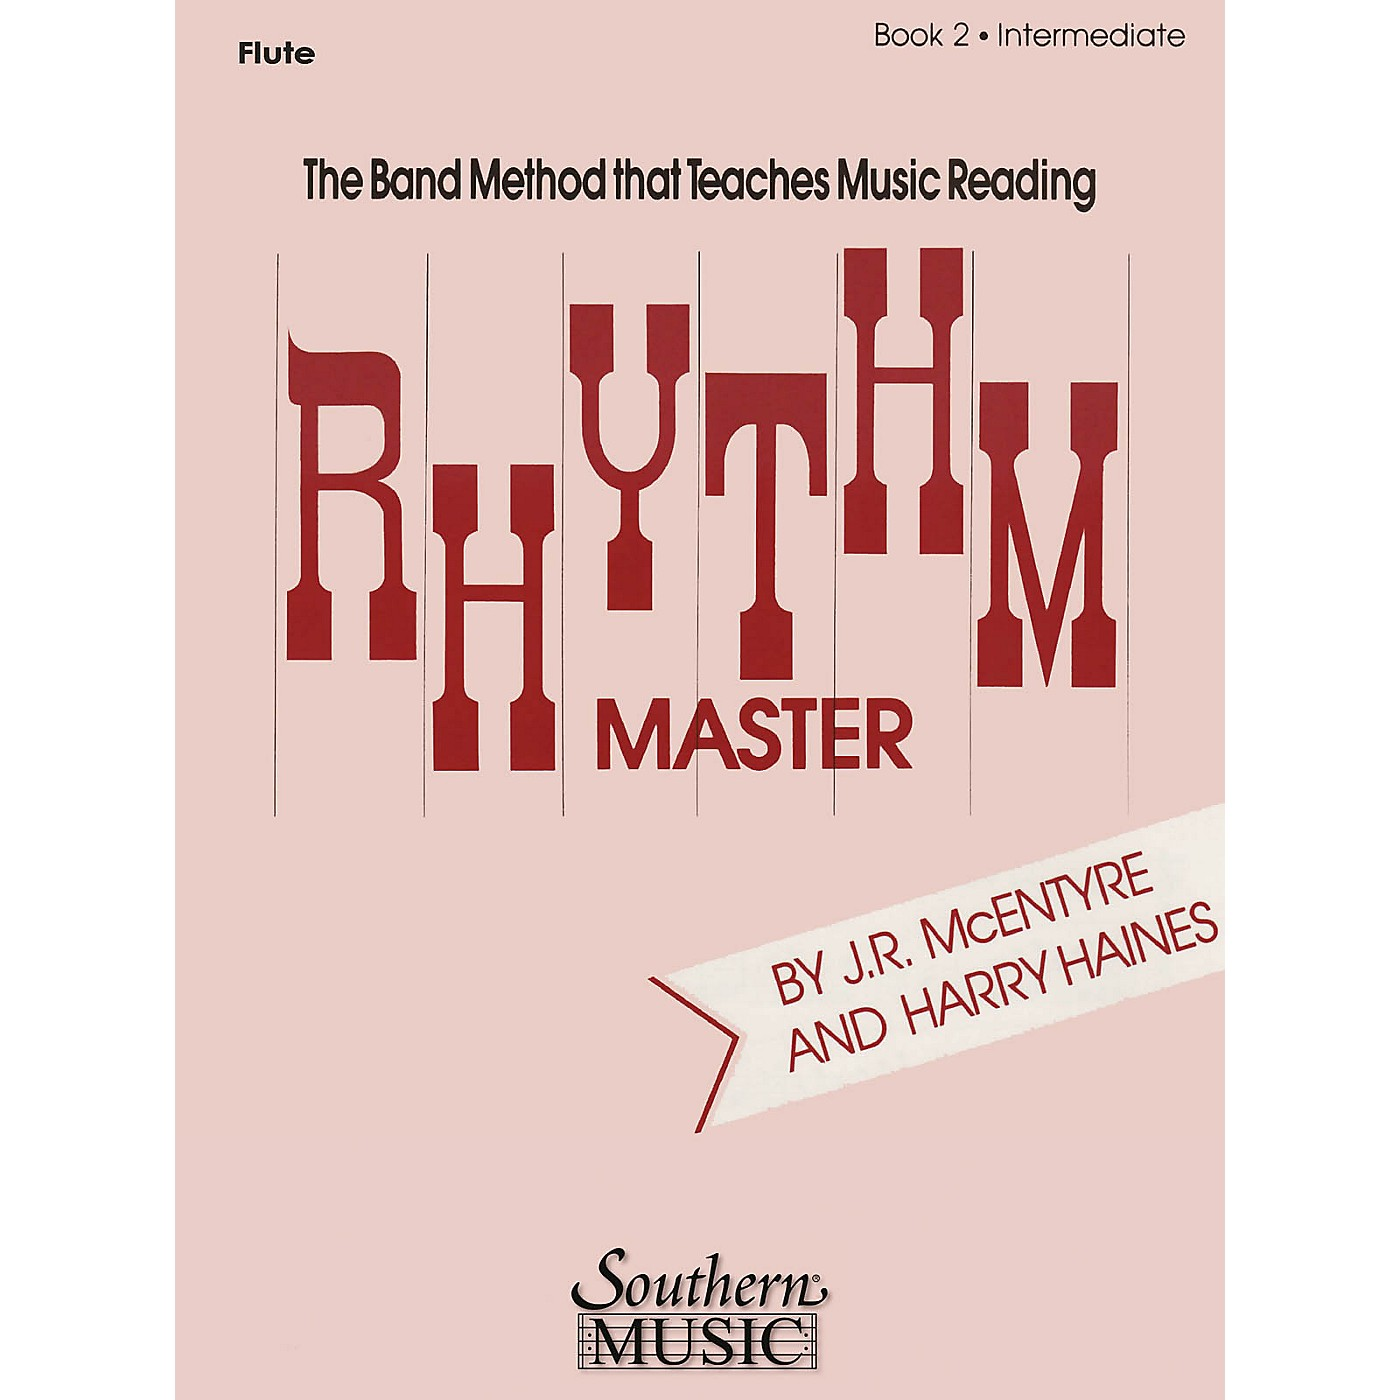 Southern Rhythm Master - Book 2 (Intermediate) (Tuba in C (B.C.)) Southern Music Series Composed by Harry Haines thumbnail